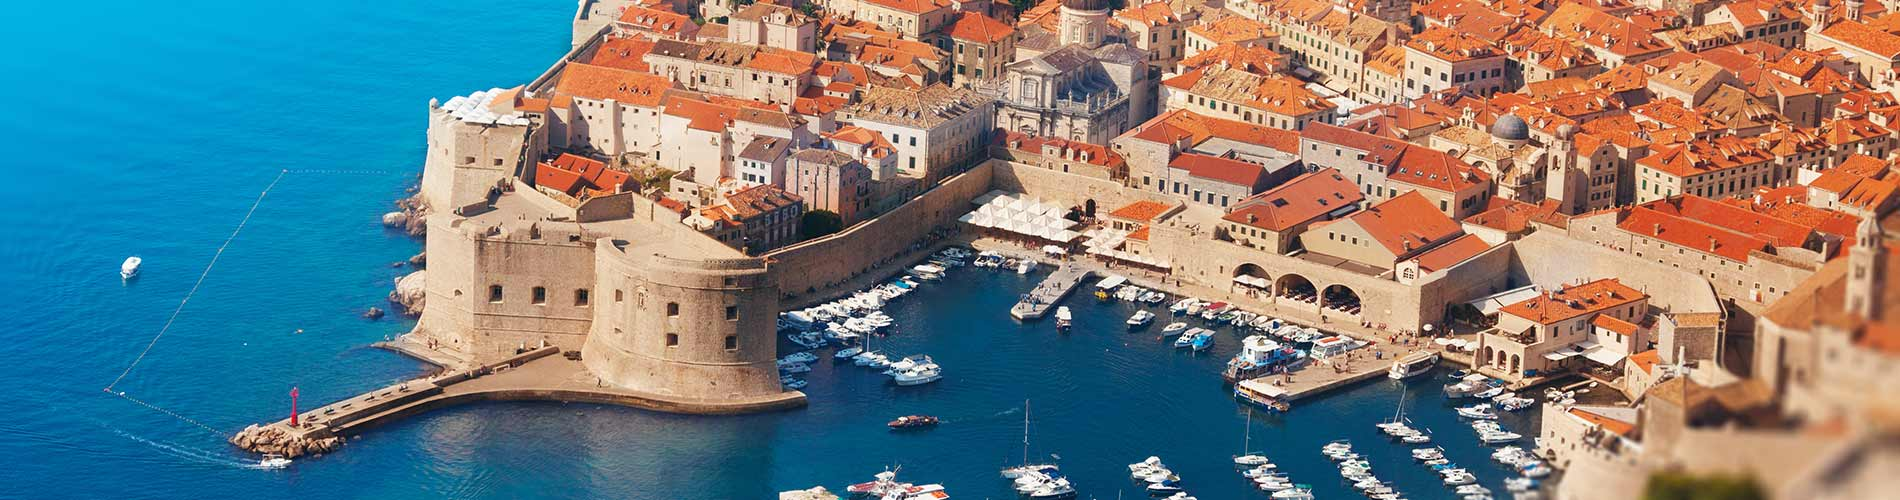 Dubrovnik old city Port.jpg